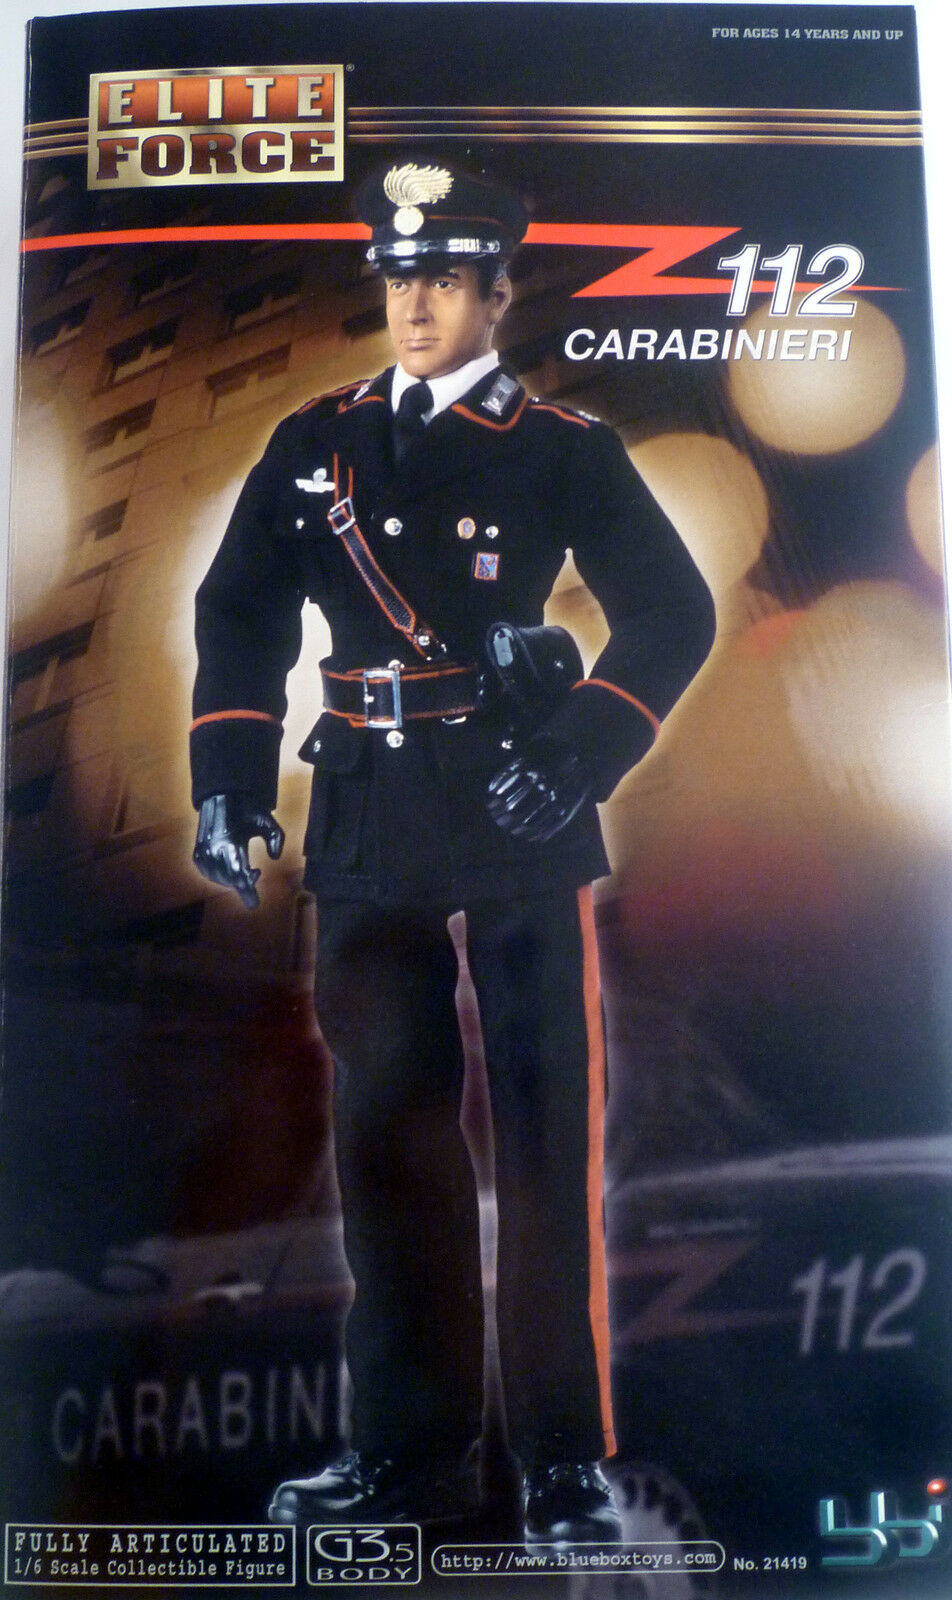 Bbi Elite Force italian police CARABINIERI fully articulated 1 6 figure NIB